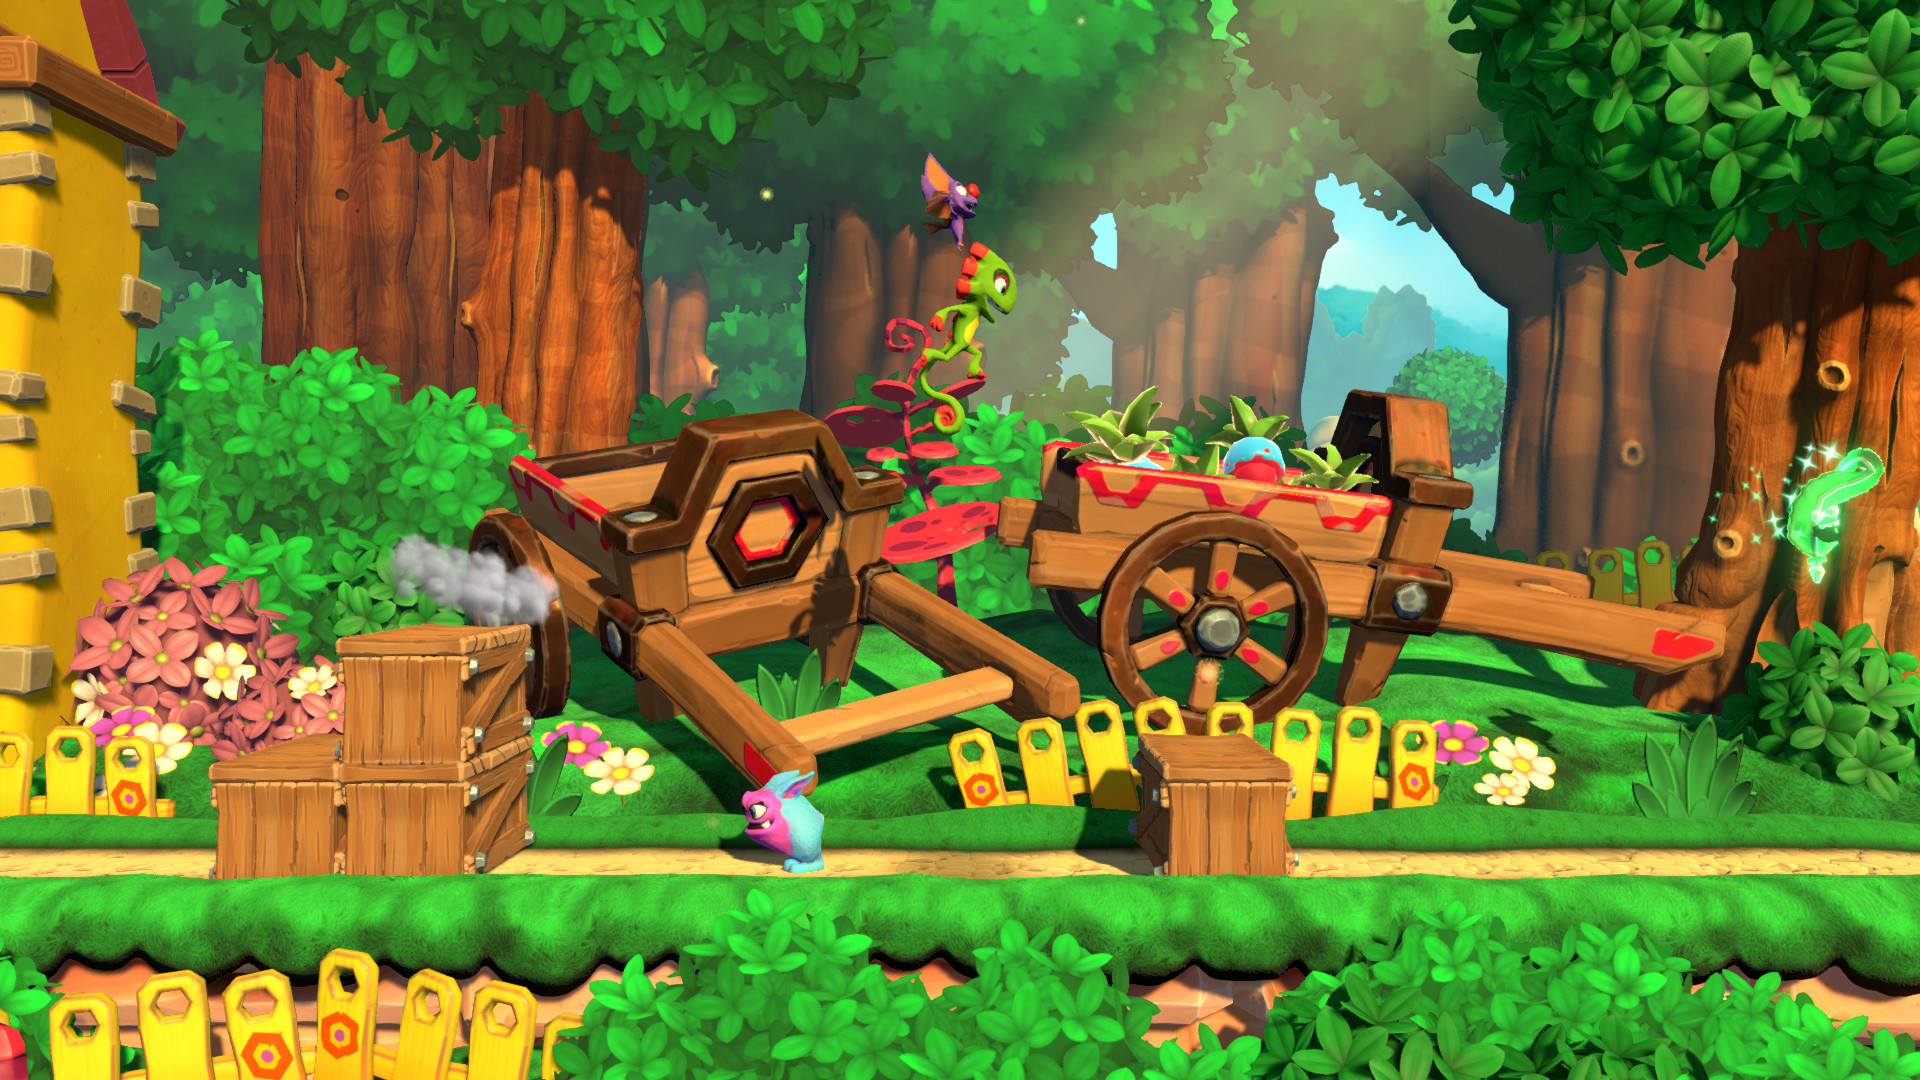 Yooka-Laylee and the Impossible Lair goes to bat in October screenshot